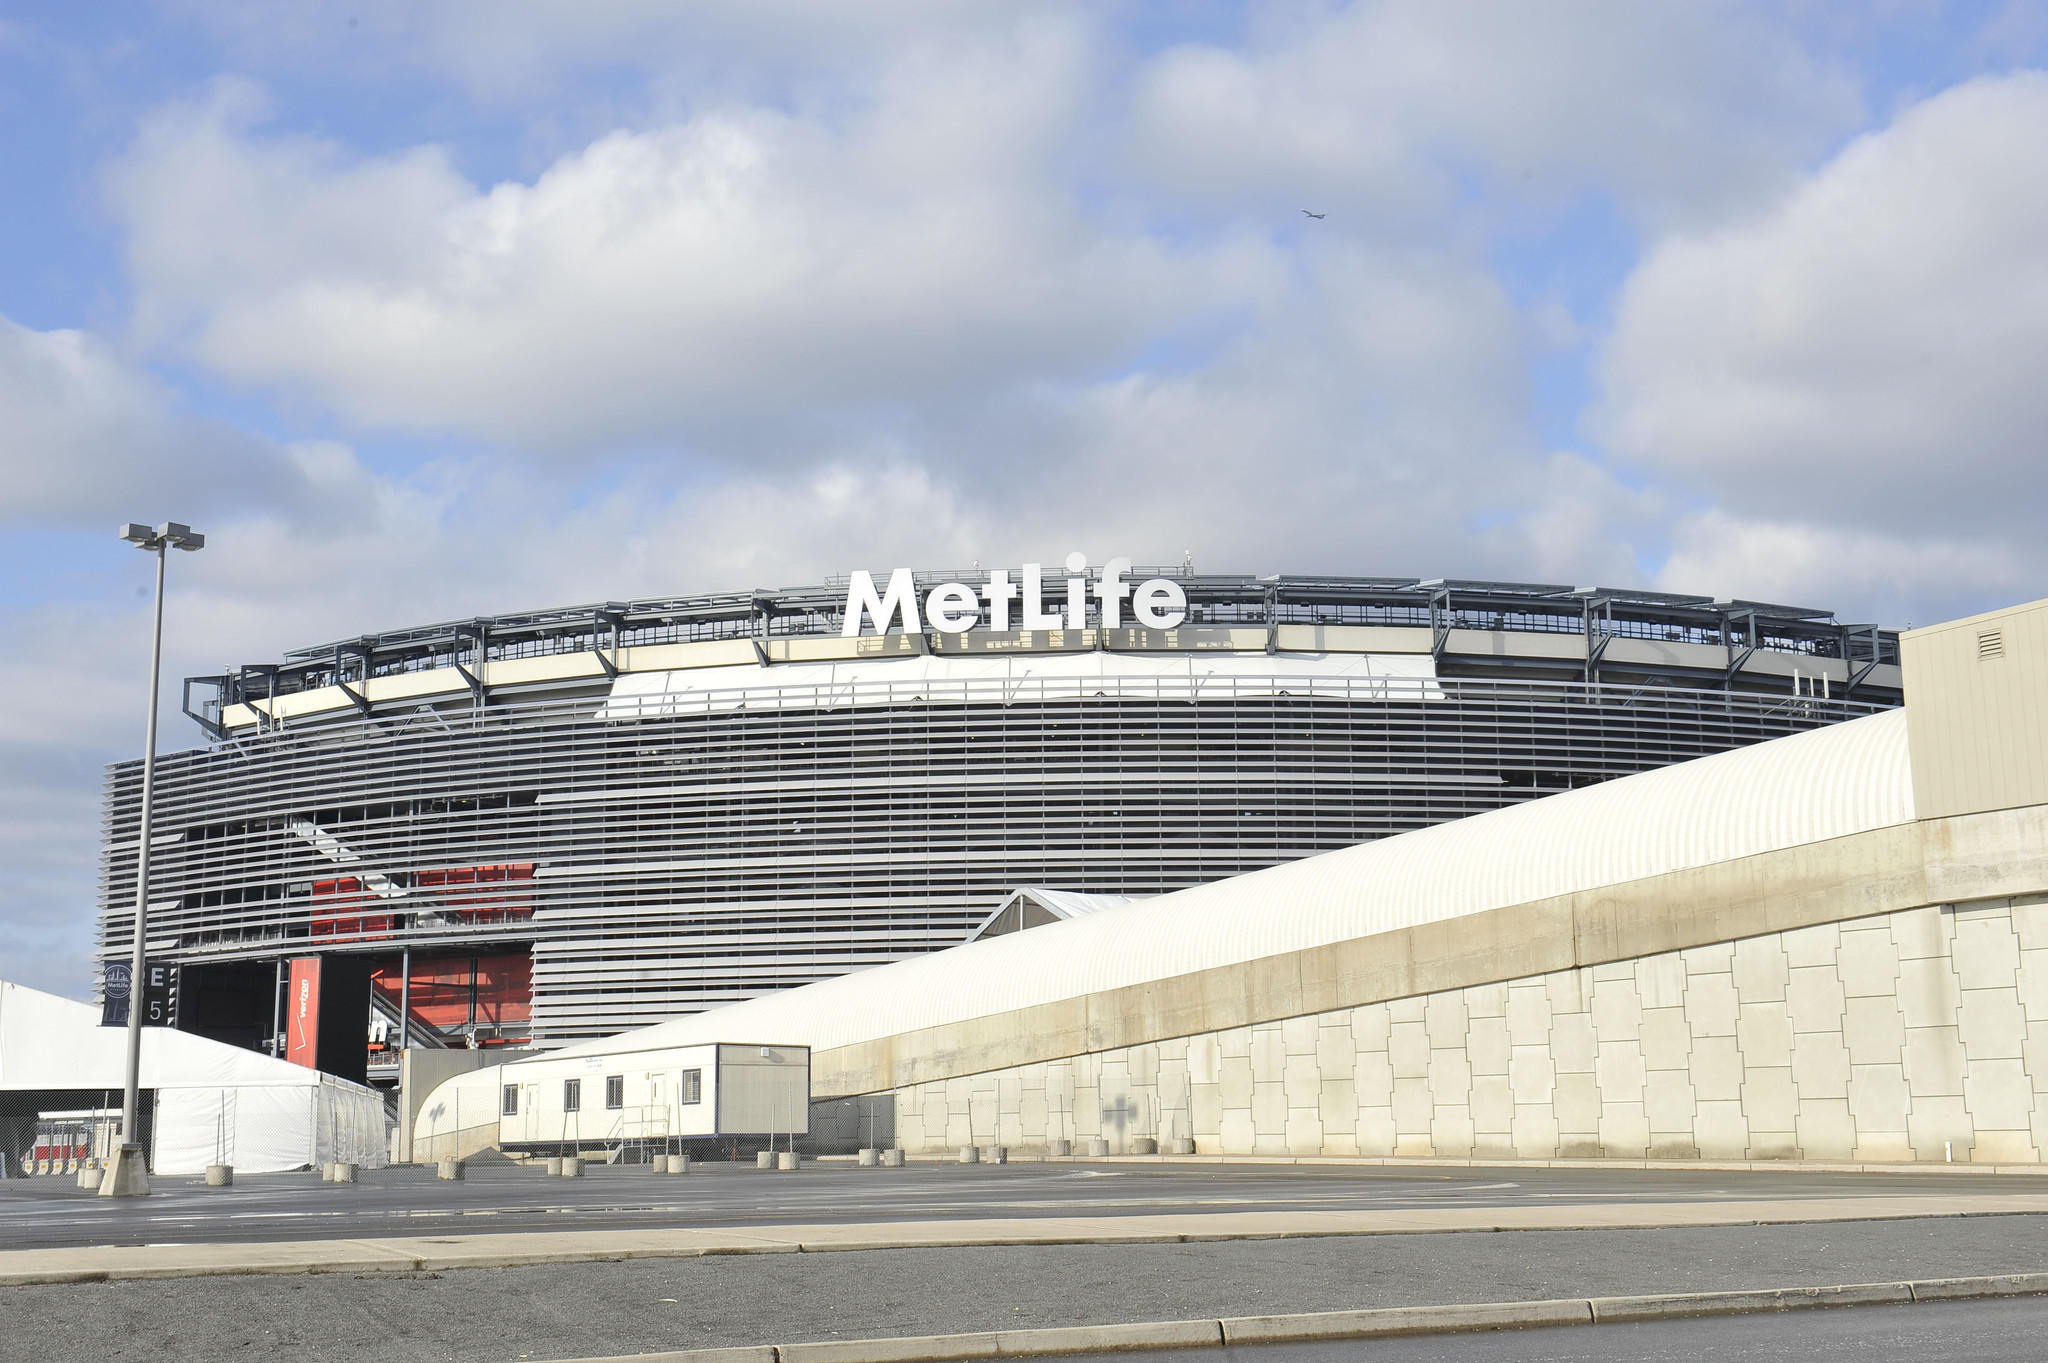 A general view of preparations for Super Bowl XLVIII at MetLife Stadium.